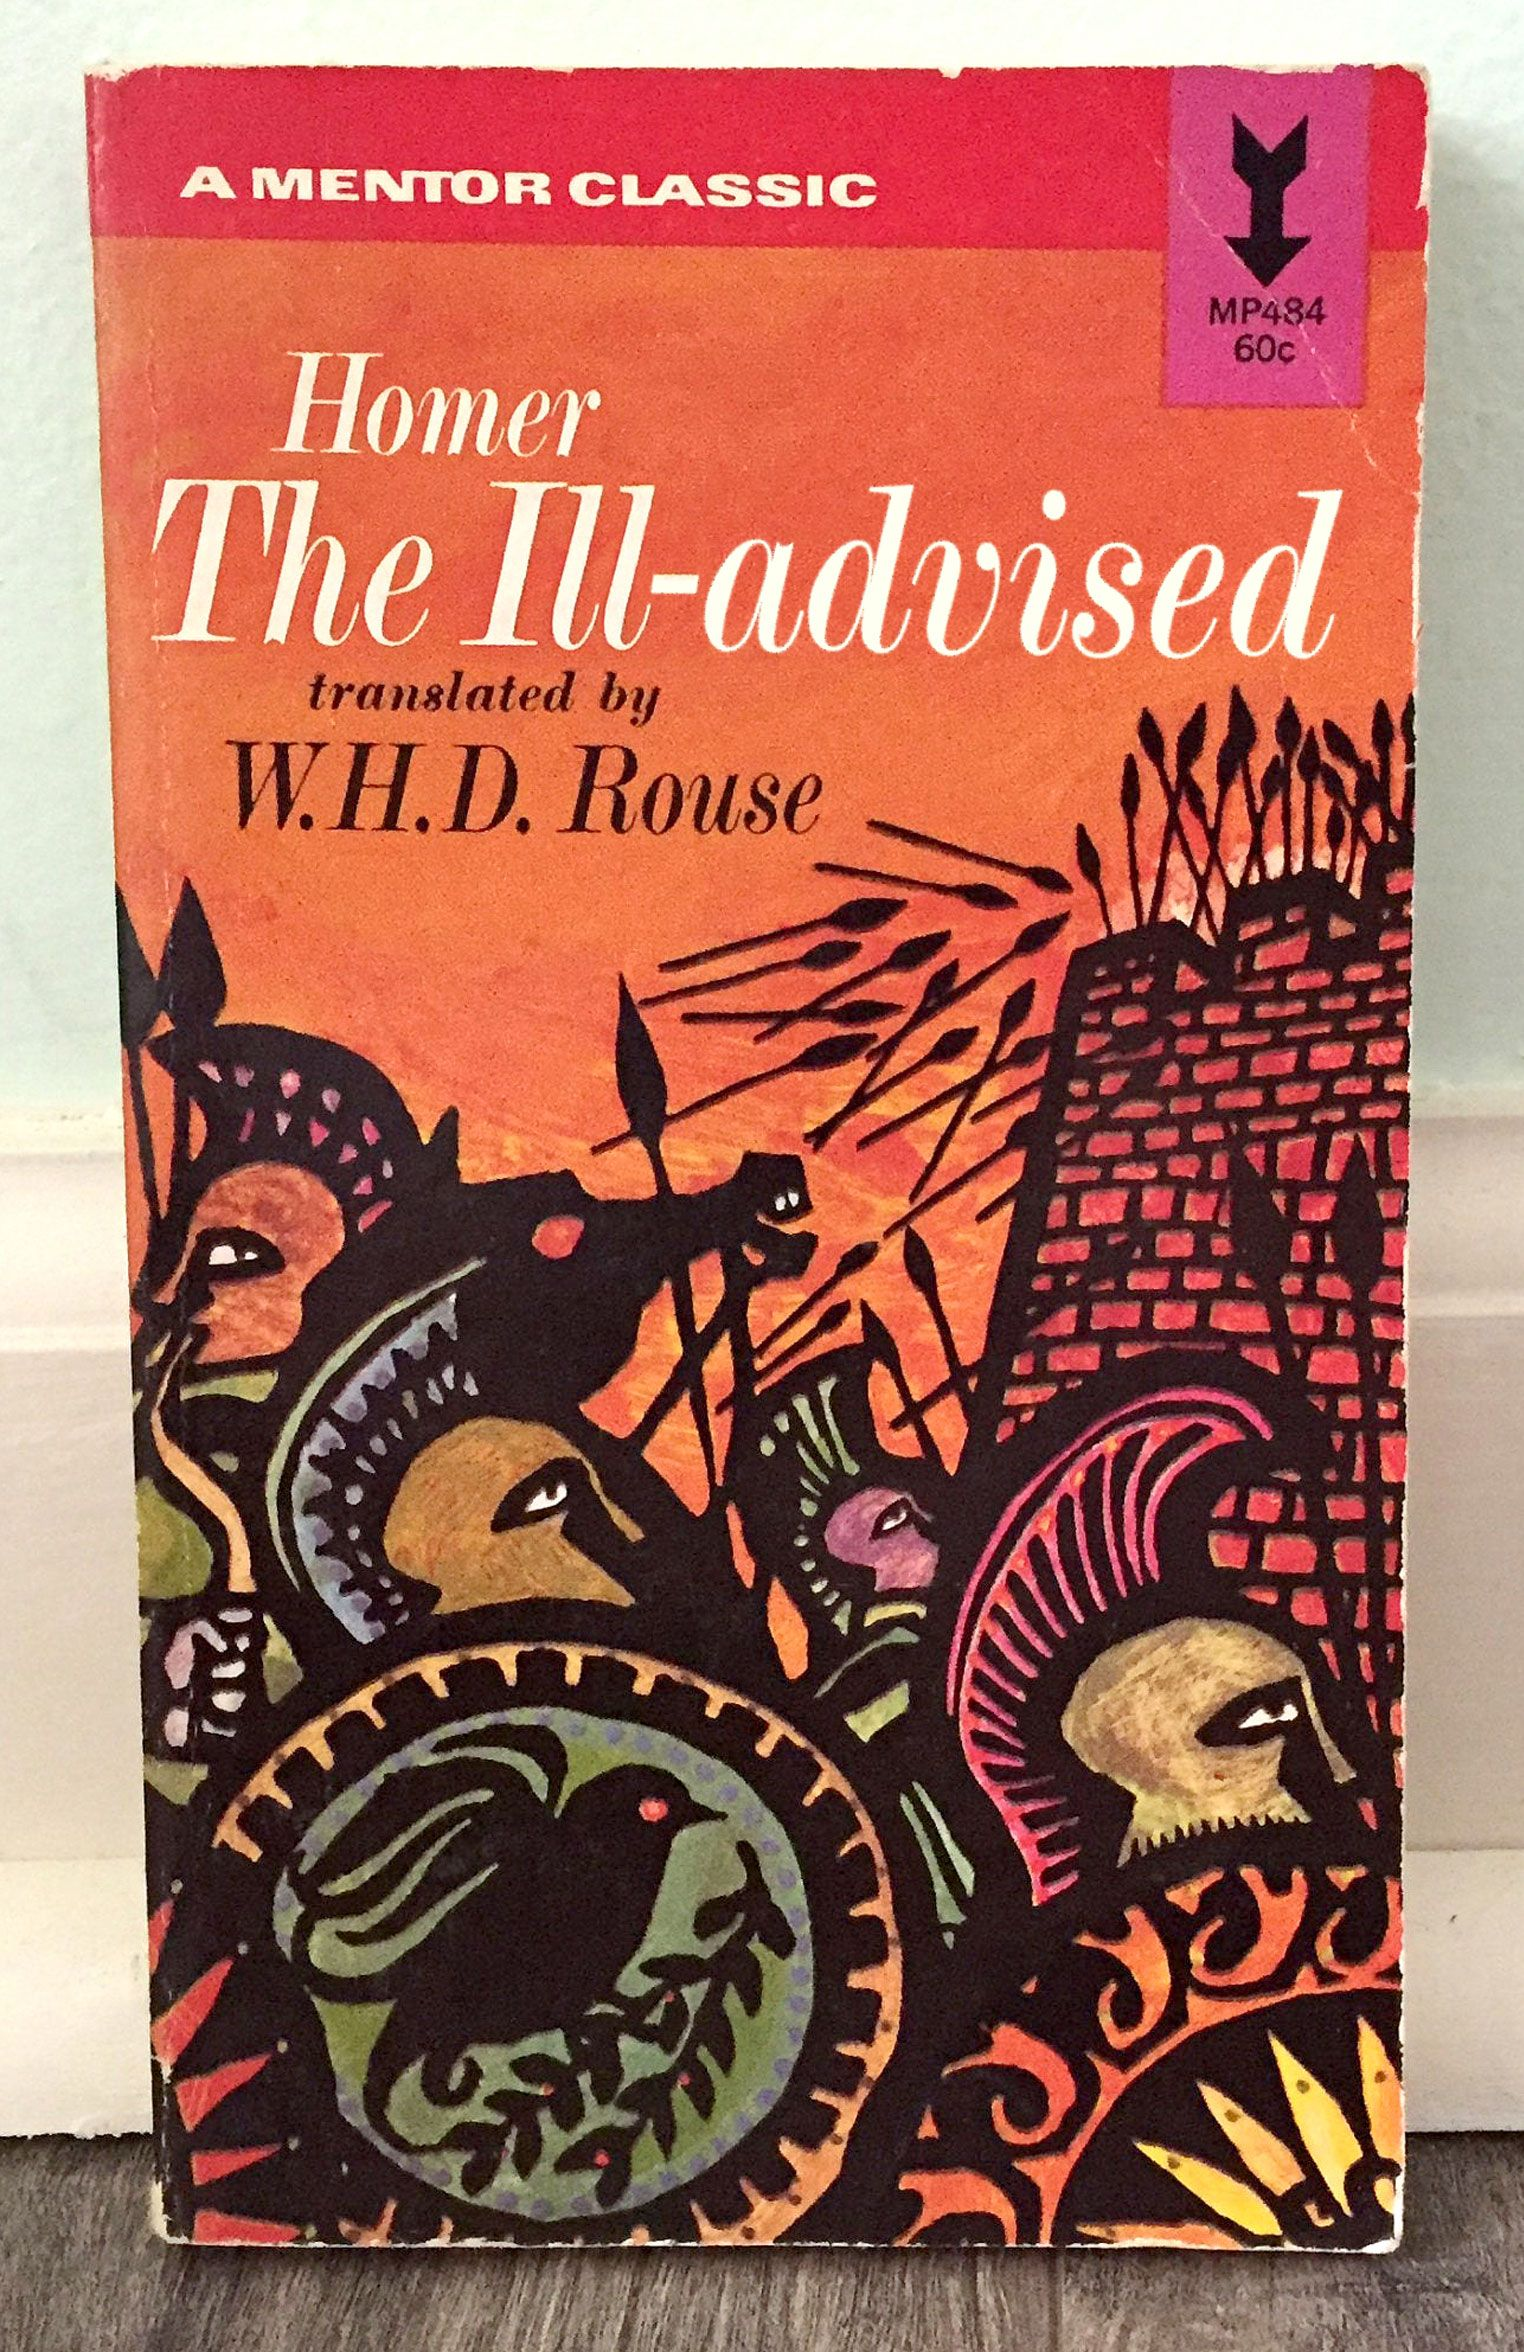 The Ill-advised (The Iliad, by Homer)